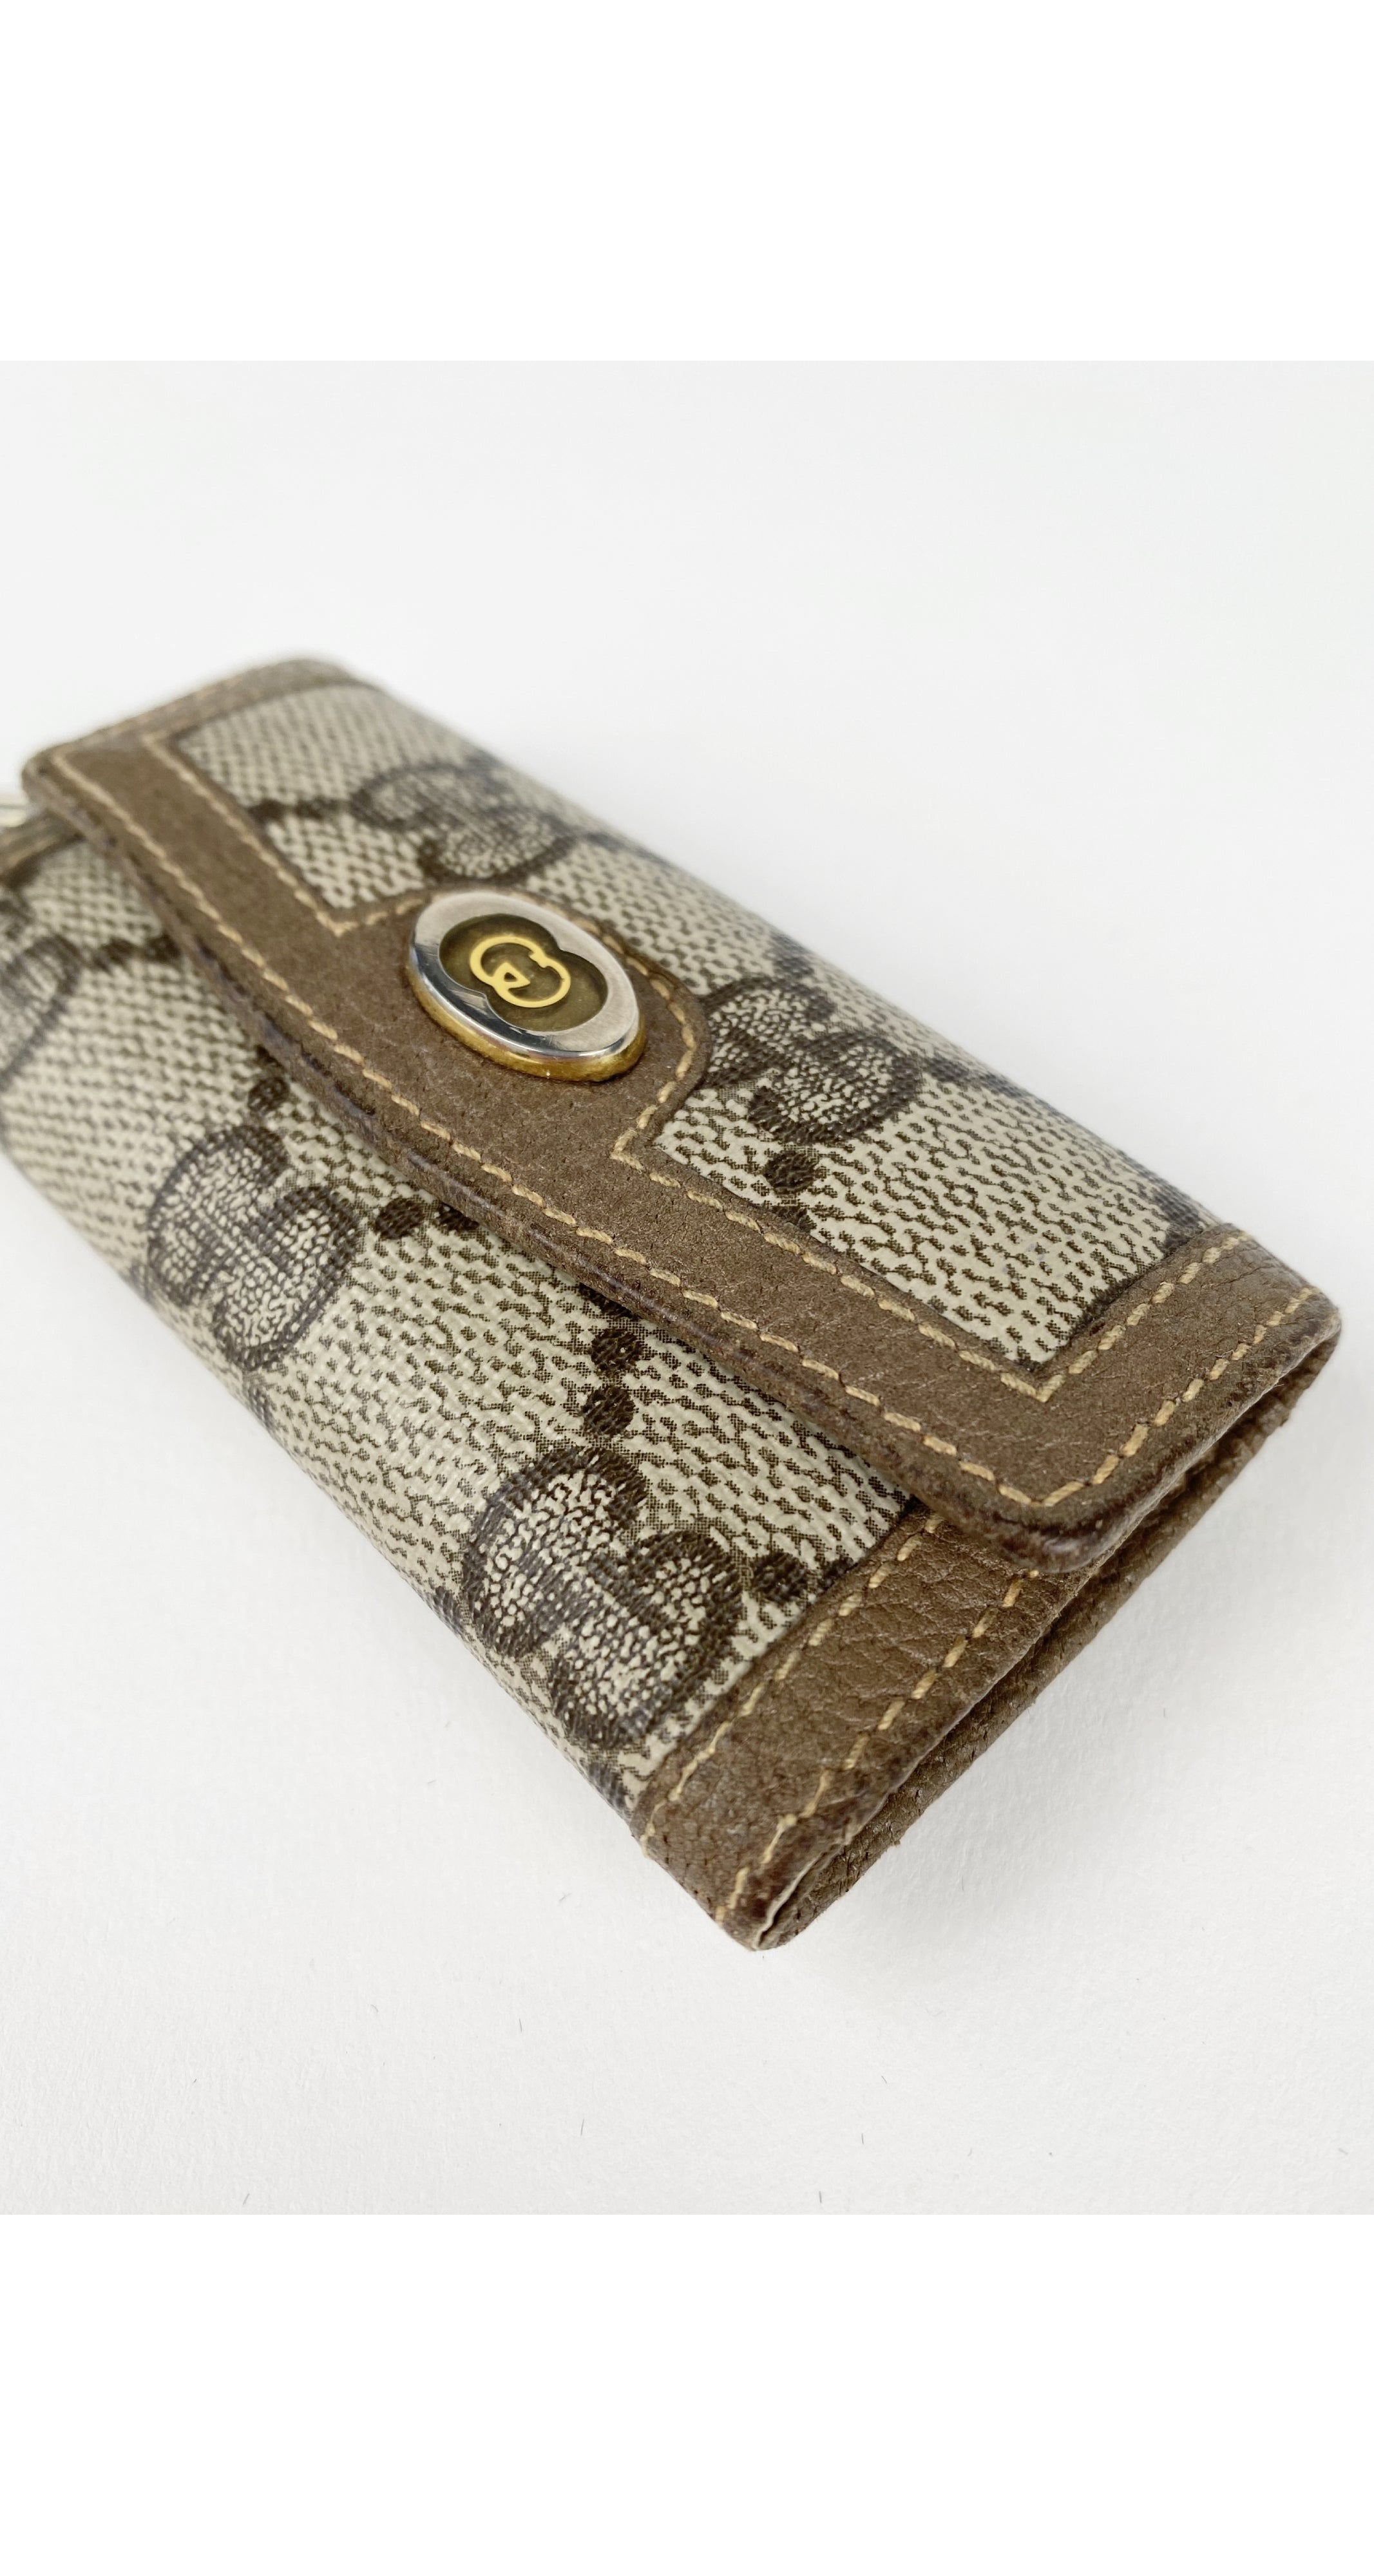 1980s GG Monogram Canvas & Leather Key Holder Case